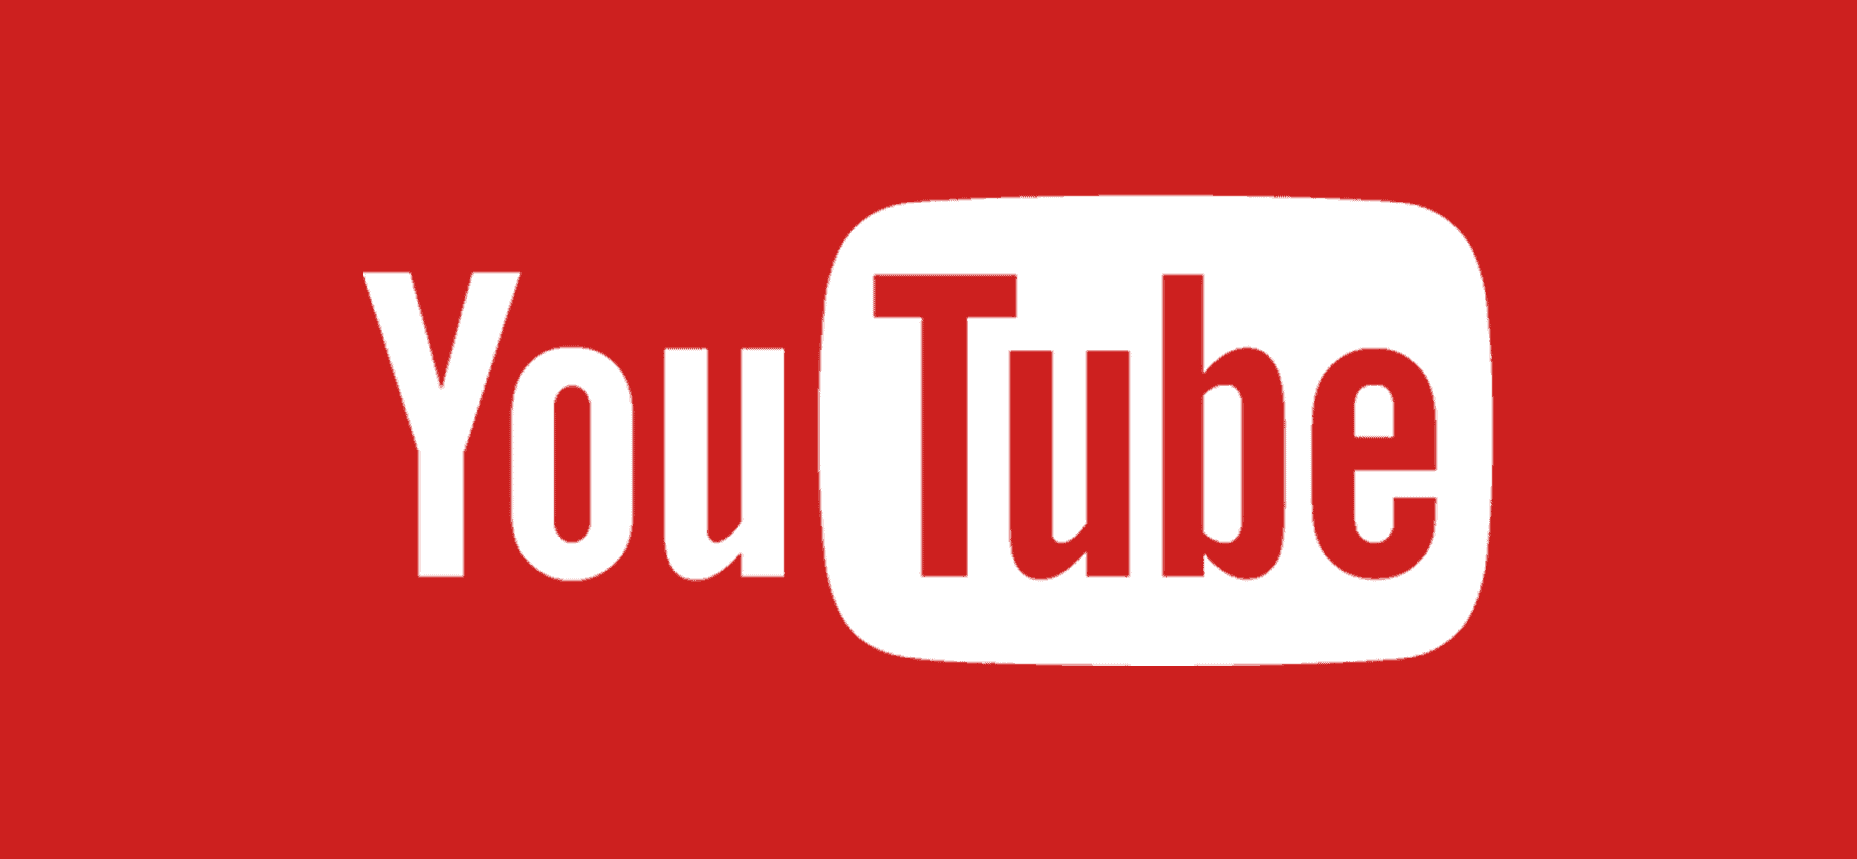 tools to make youtube channel